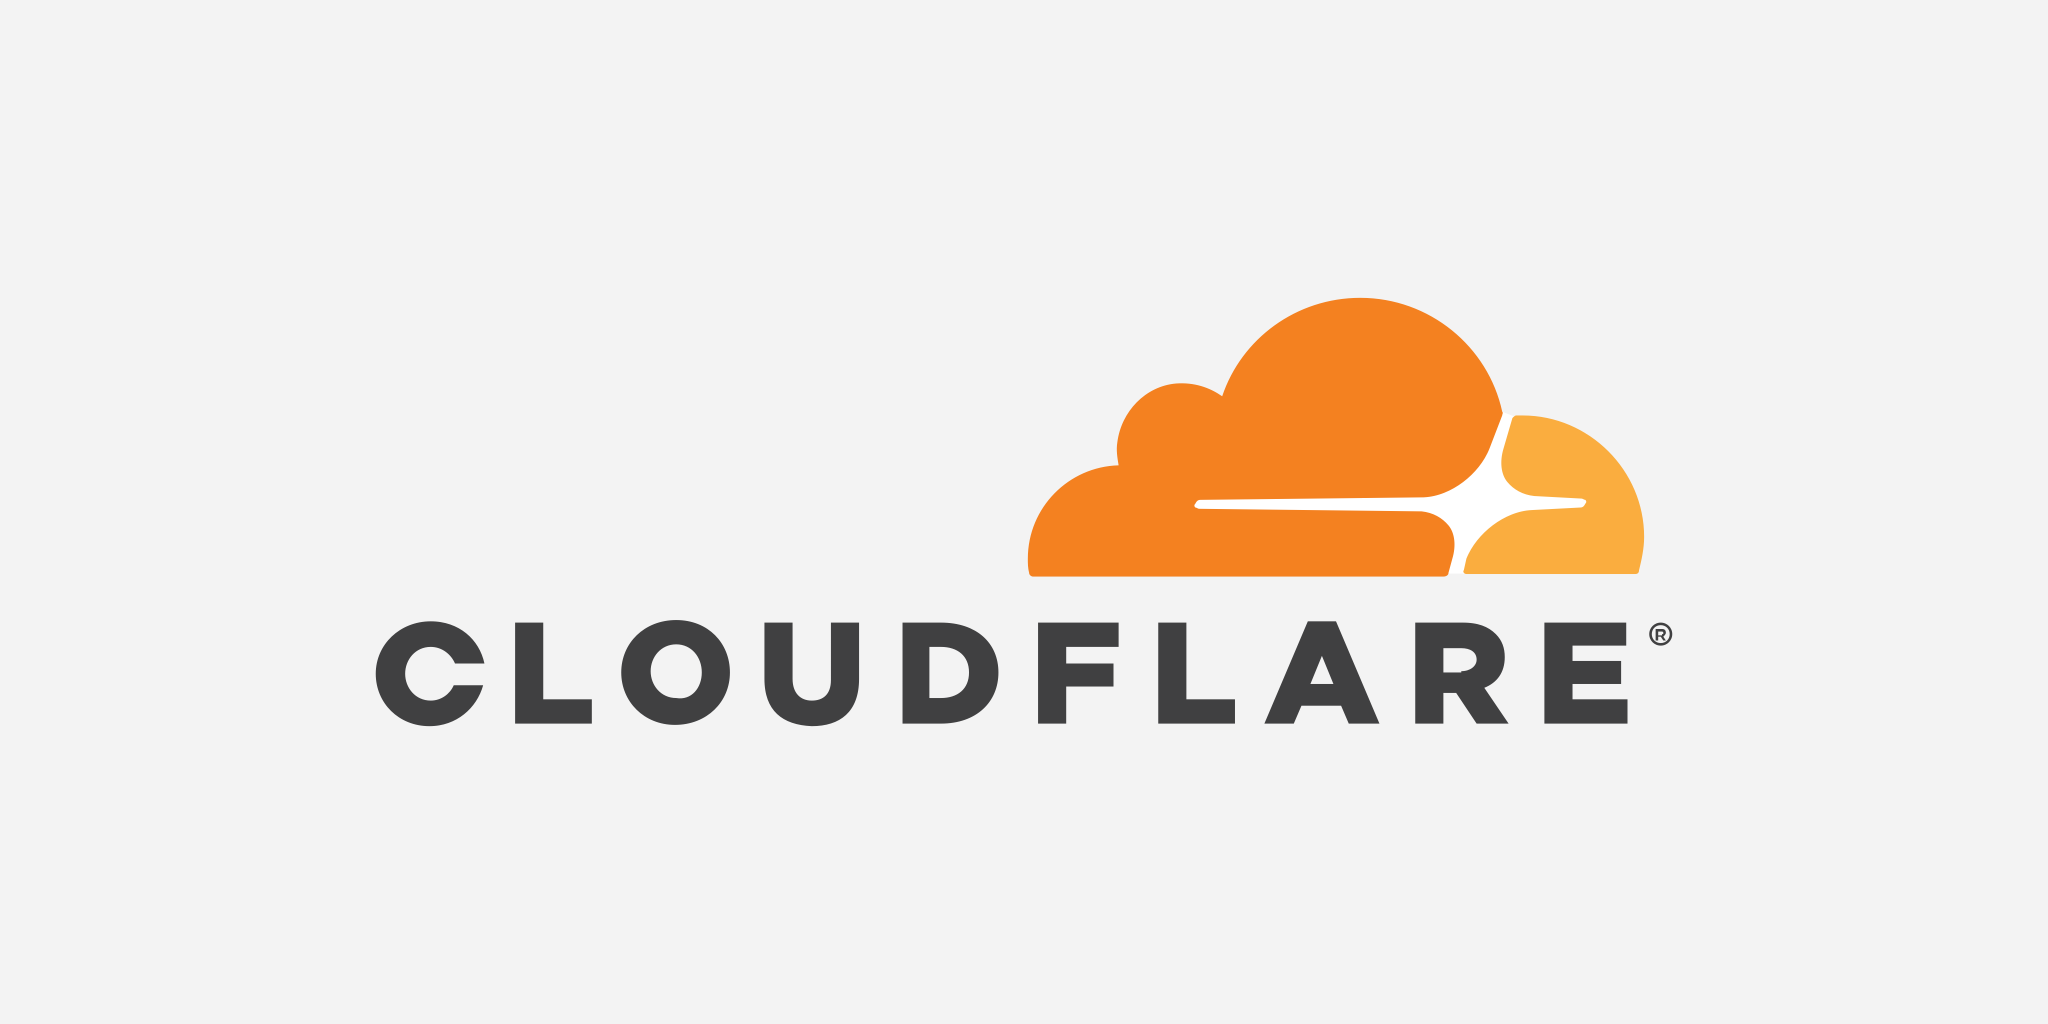 cloudflare review featured